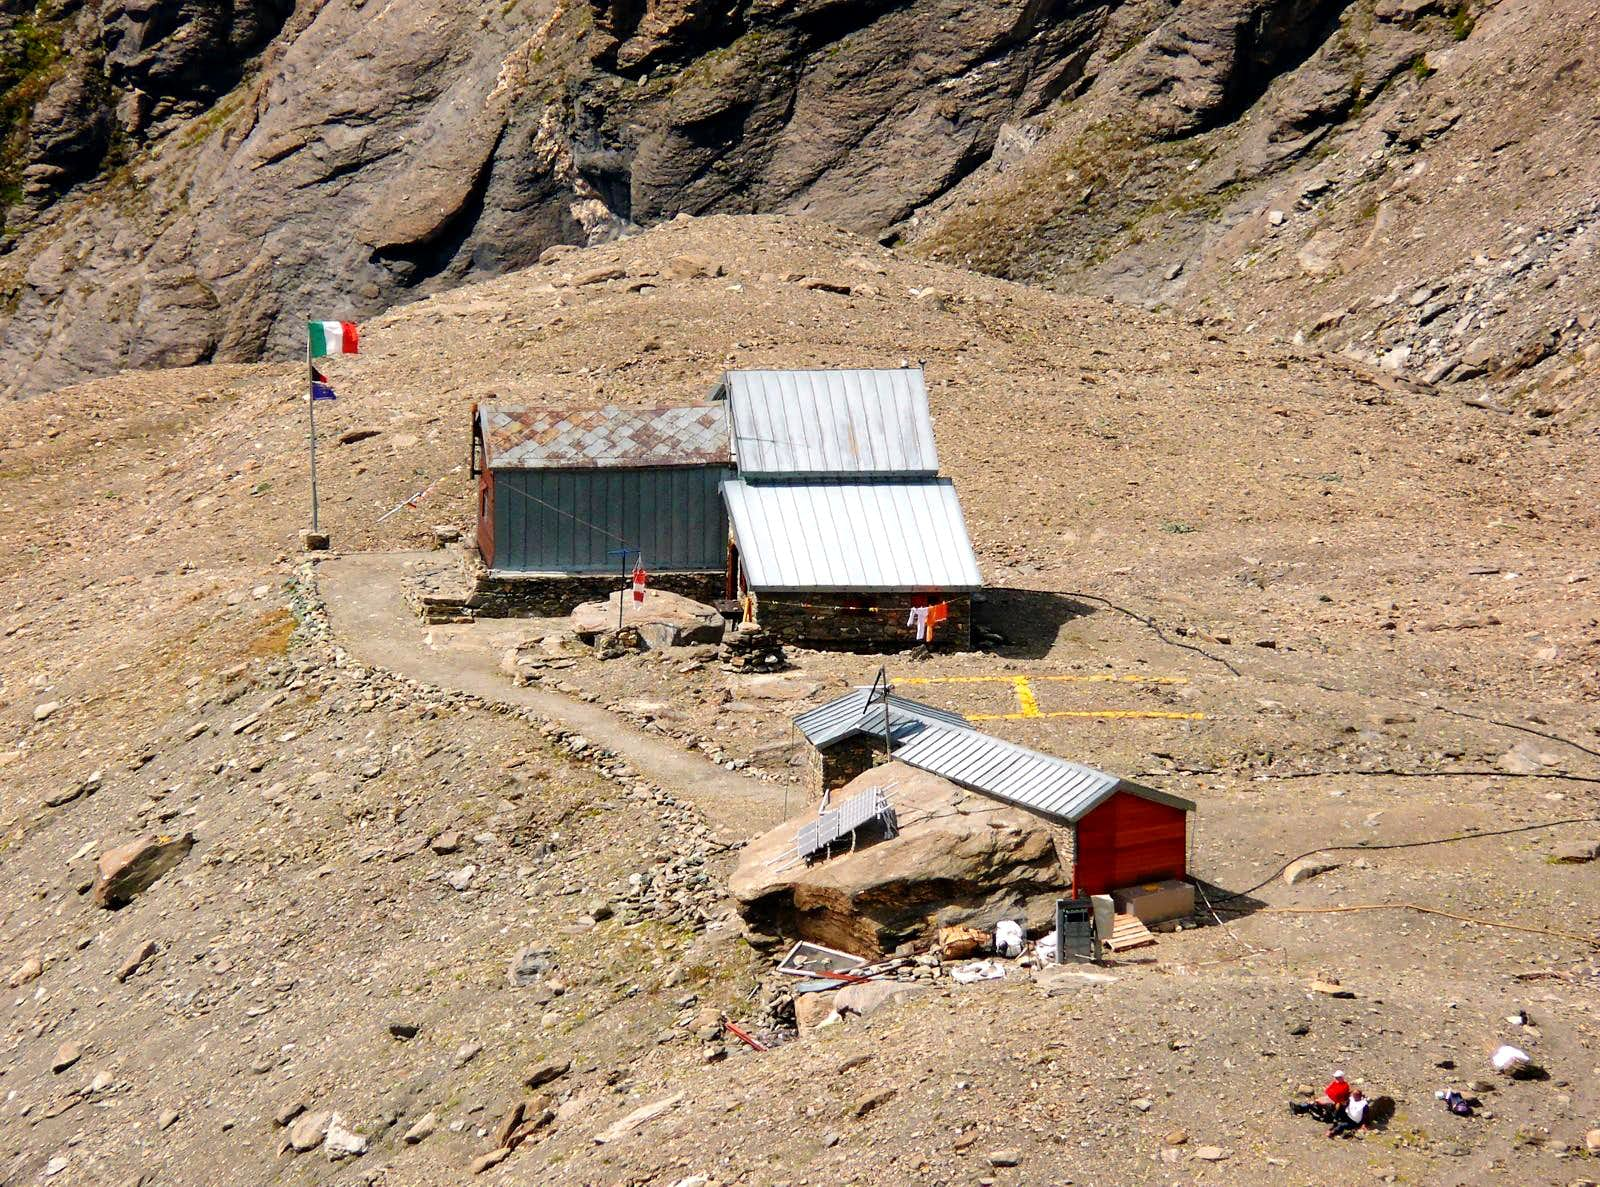 Alpine REFUGES in the Aosta Valley <b>(Valpelline and Gran San Bernardo Valley)</b>